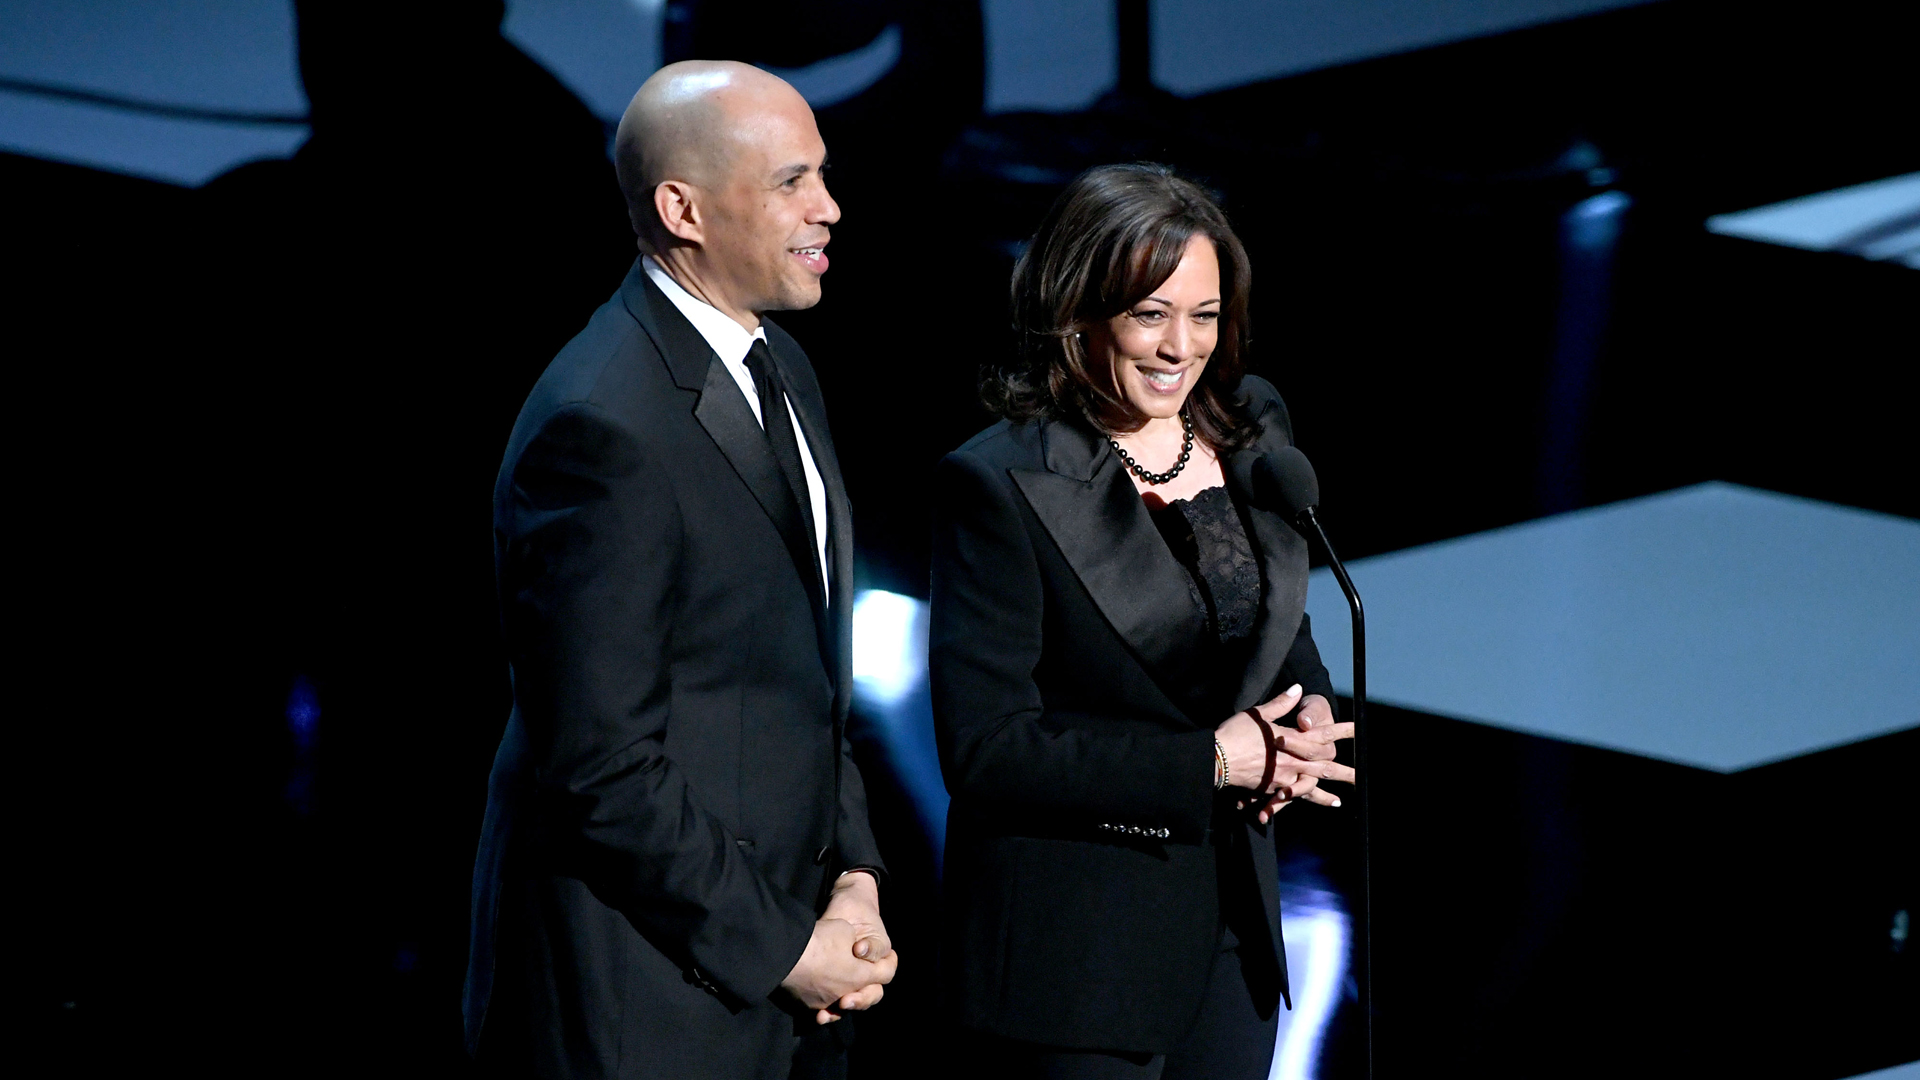 Cory Booker and Kamala Harris speak onstage at the 50th NAACP Image Awards at Dolby Theatre on March 30, 2019, in Hollywood. (Credit: Kevin Winter/Getty Images)